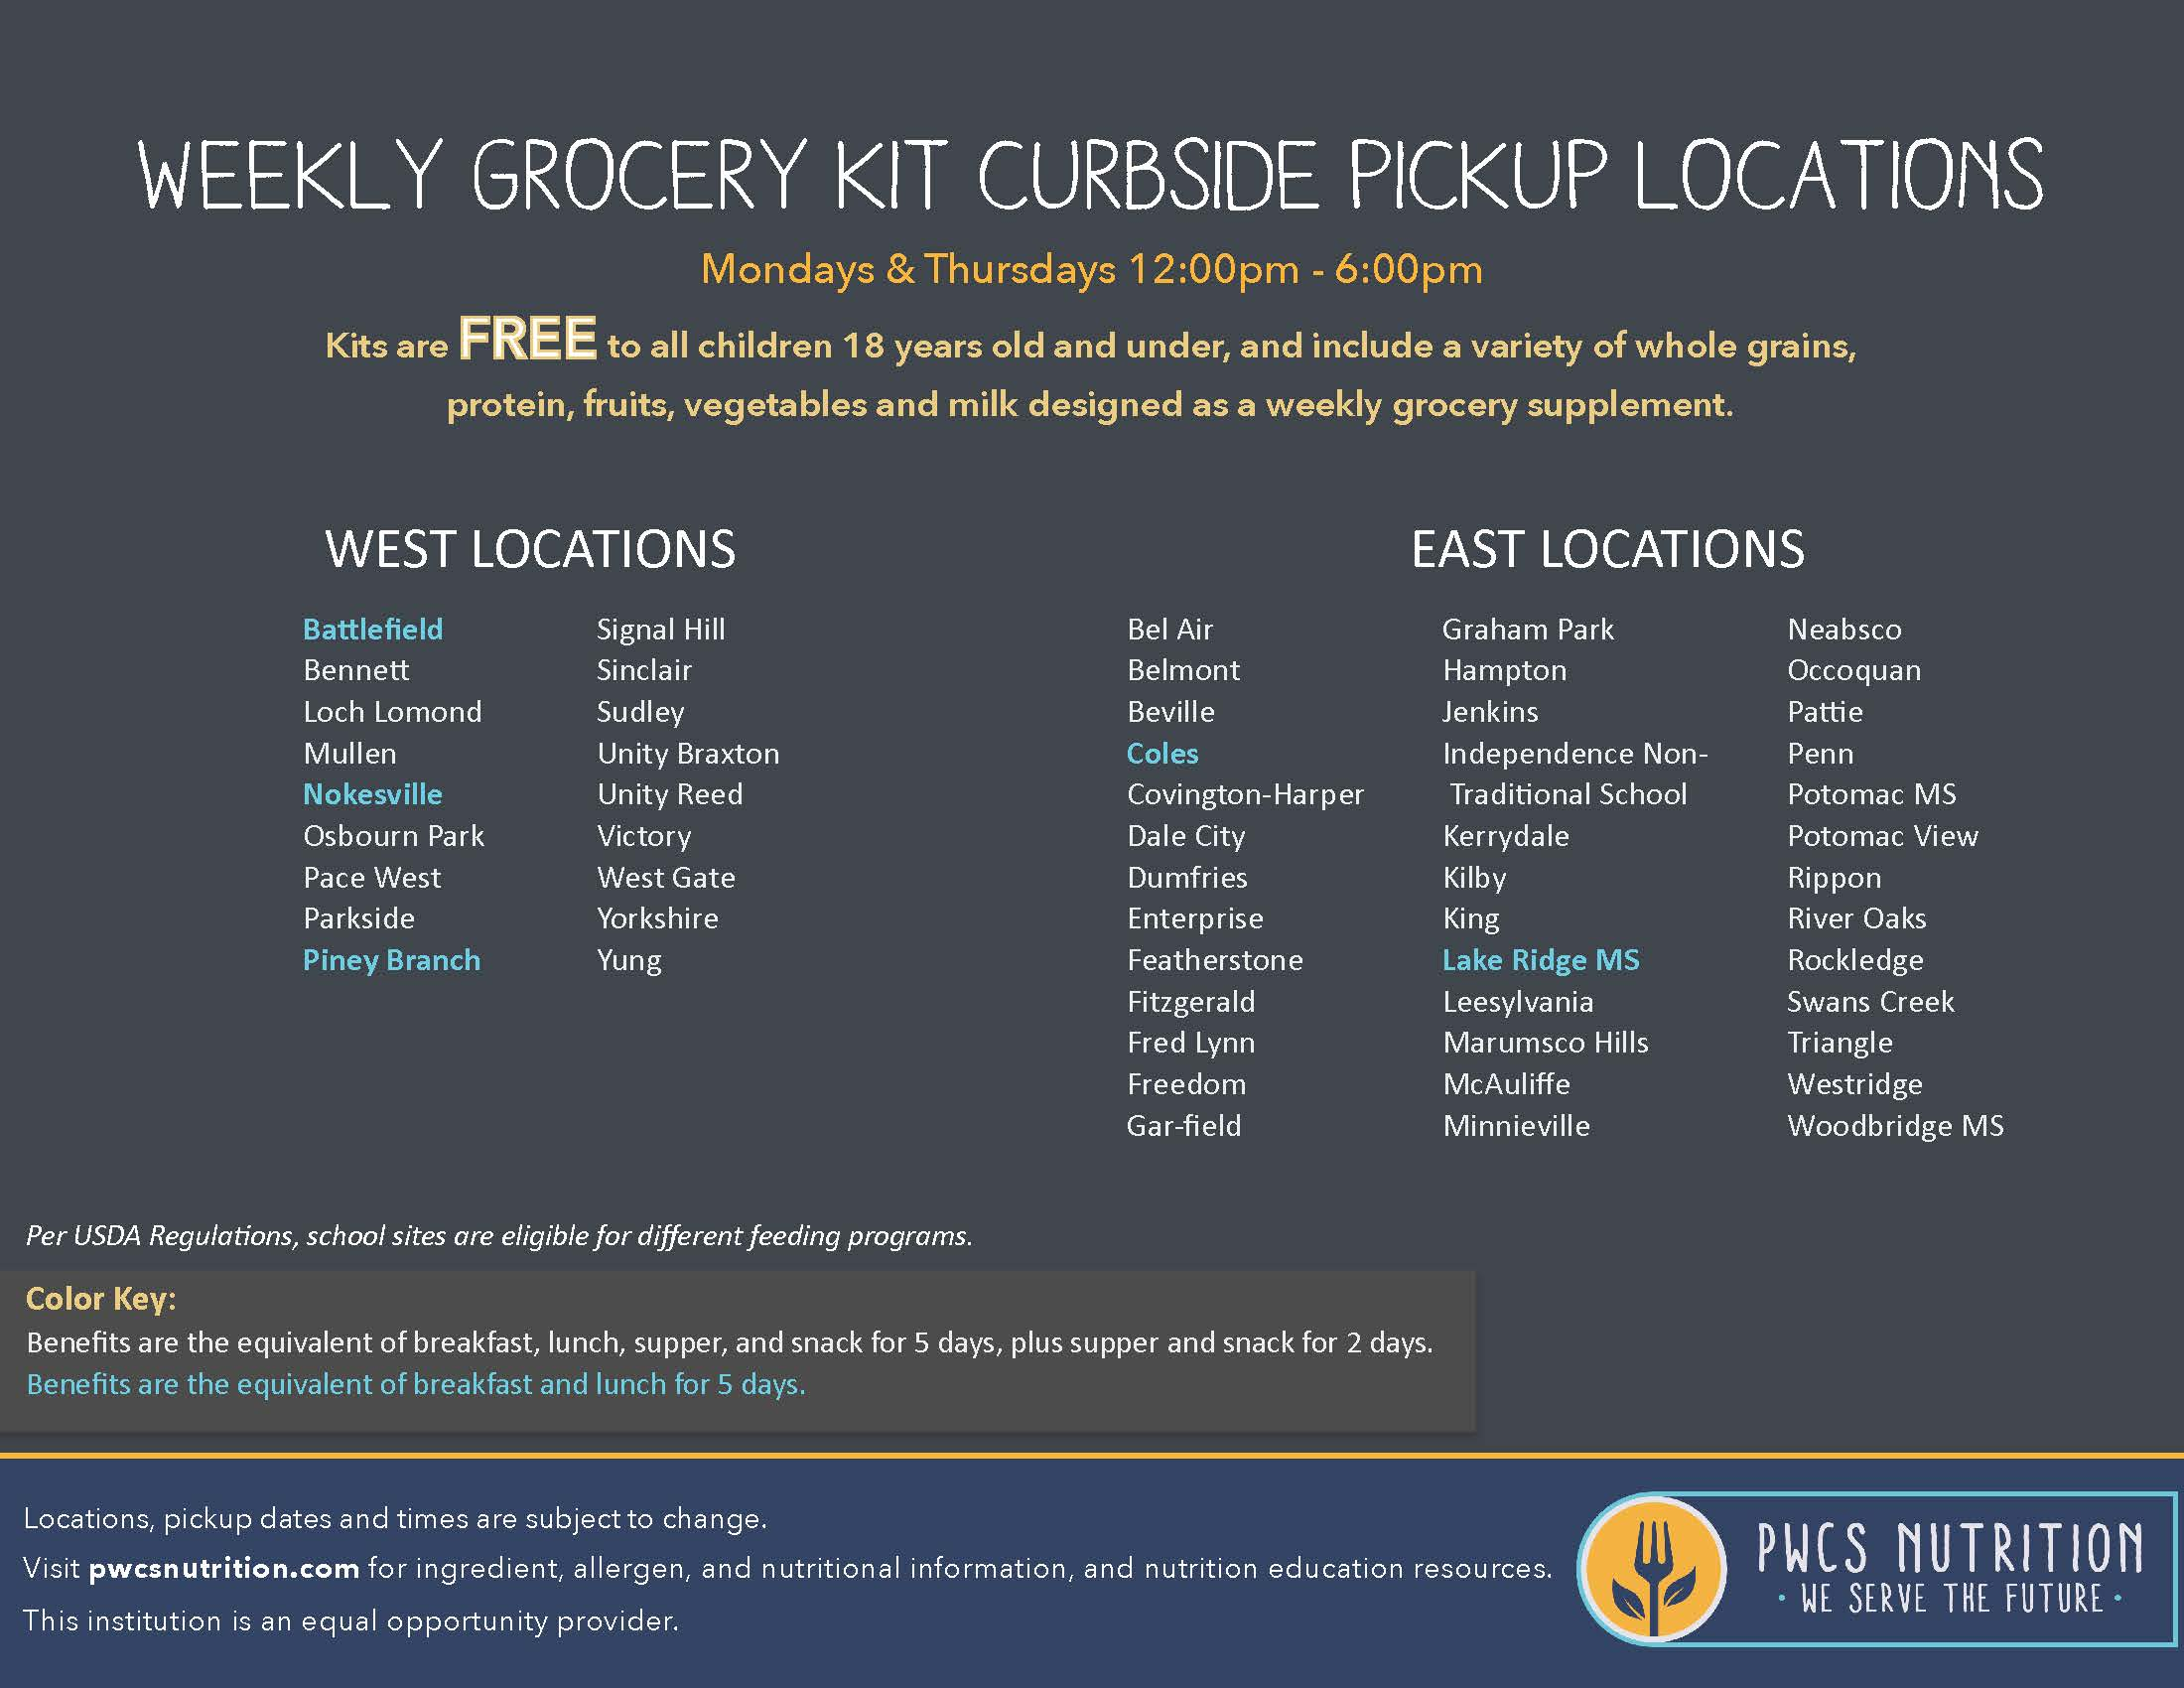 Free Weekly Grocery Kit Curbside Pickup Locations